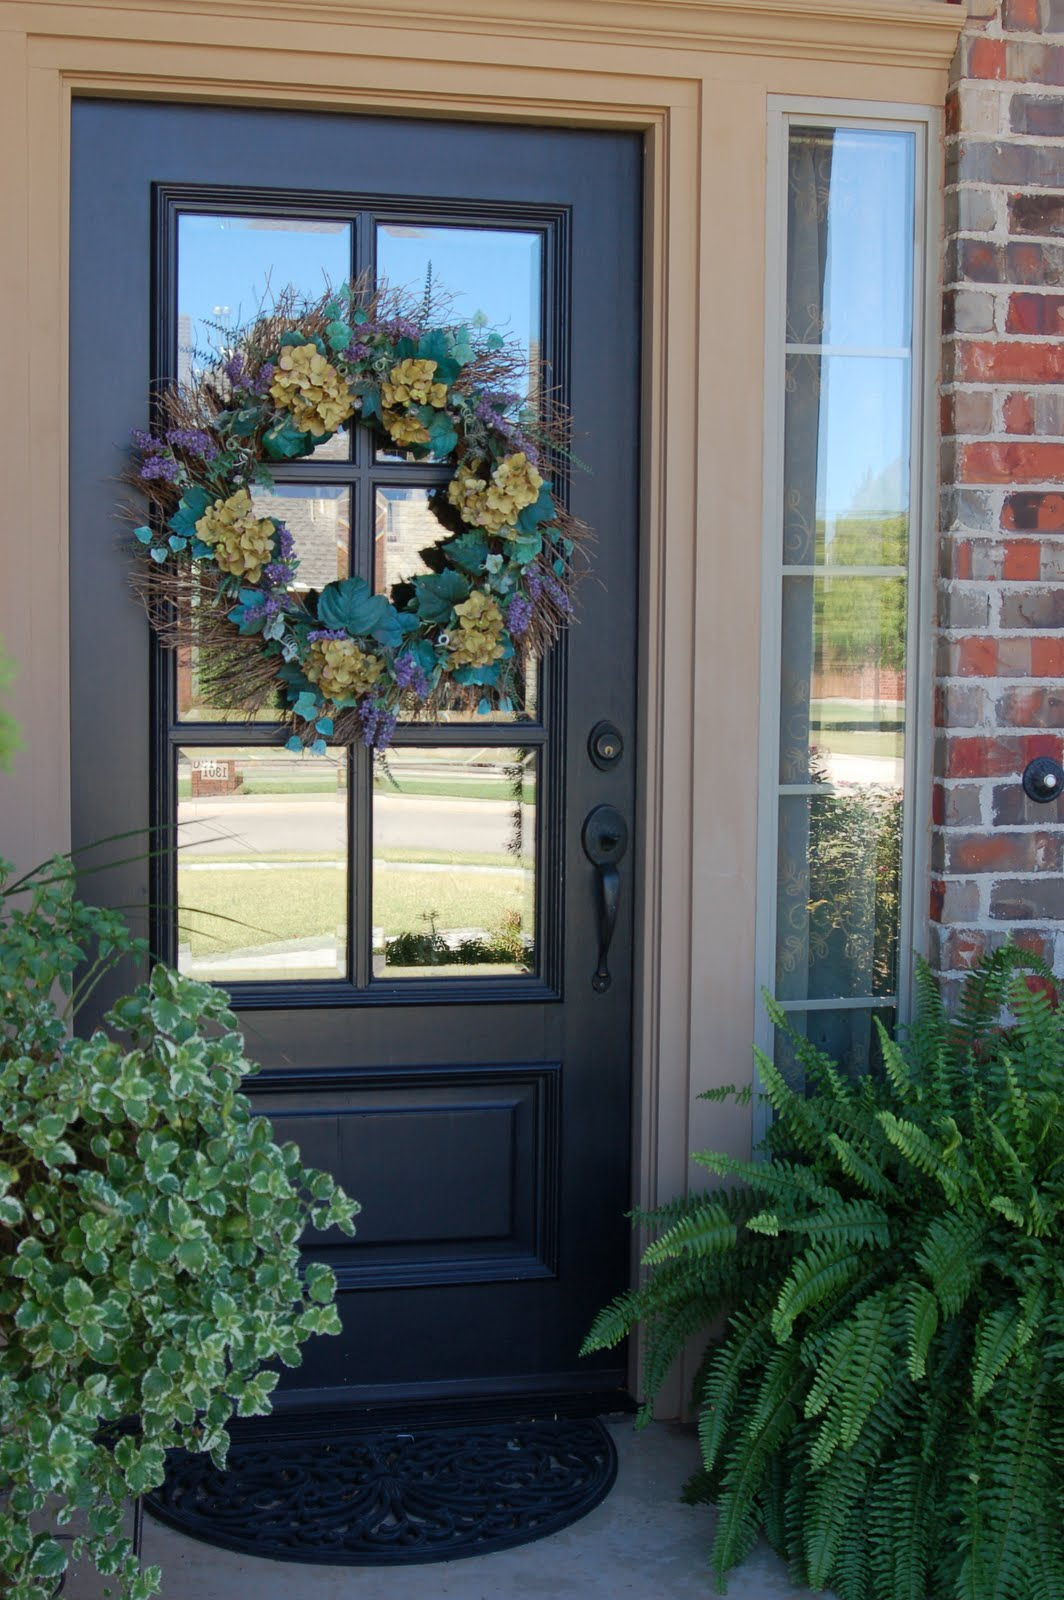 Grey dog designs front door facelift for Front window ideas